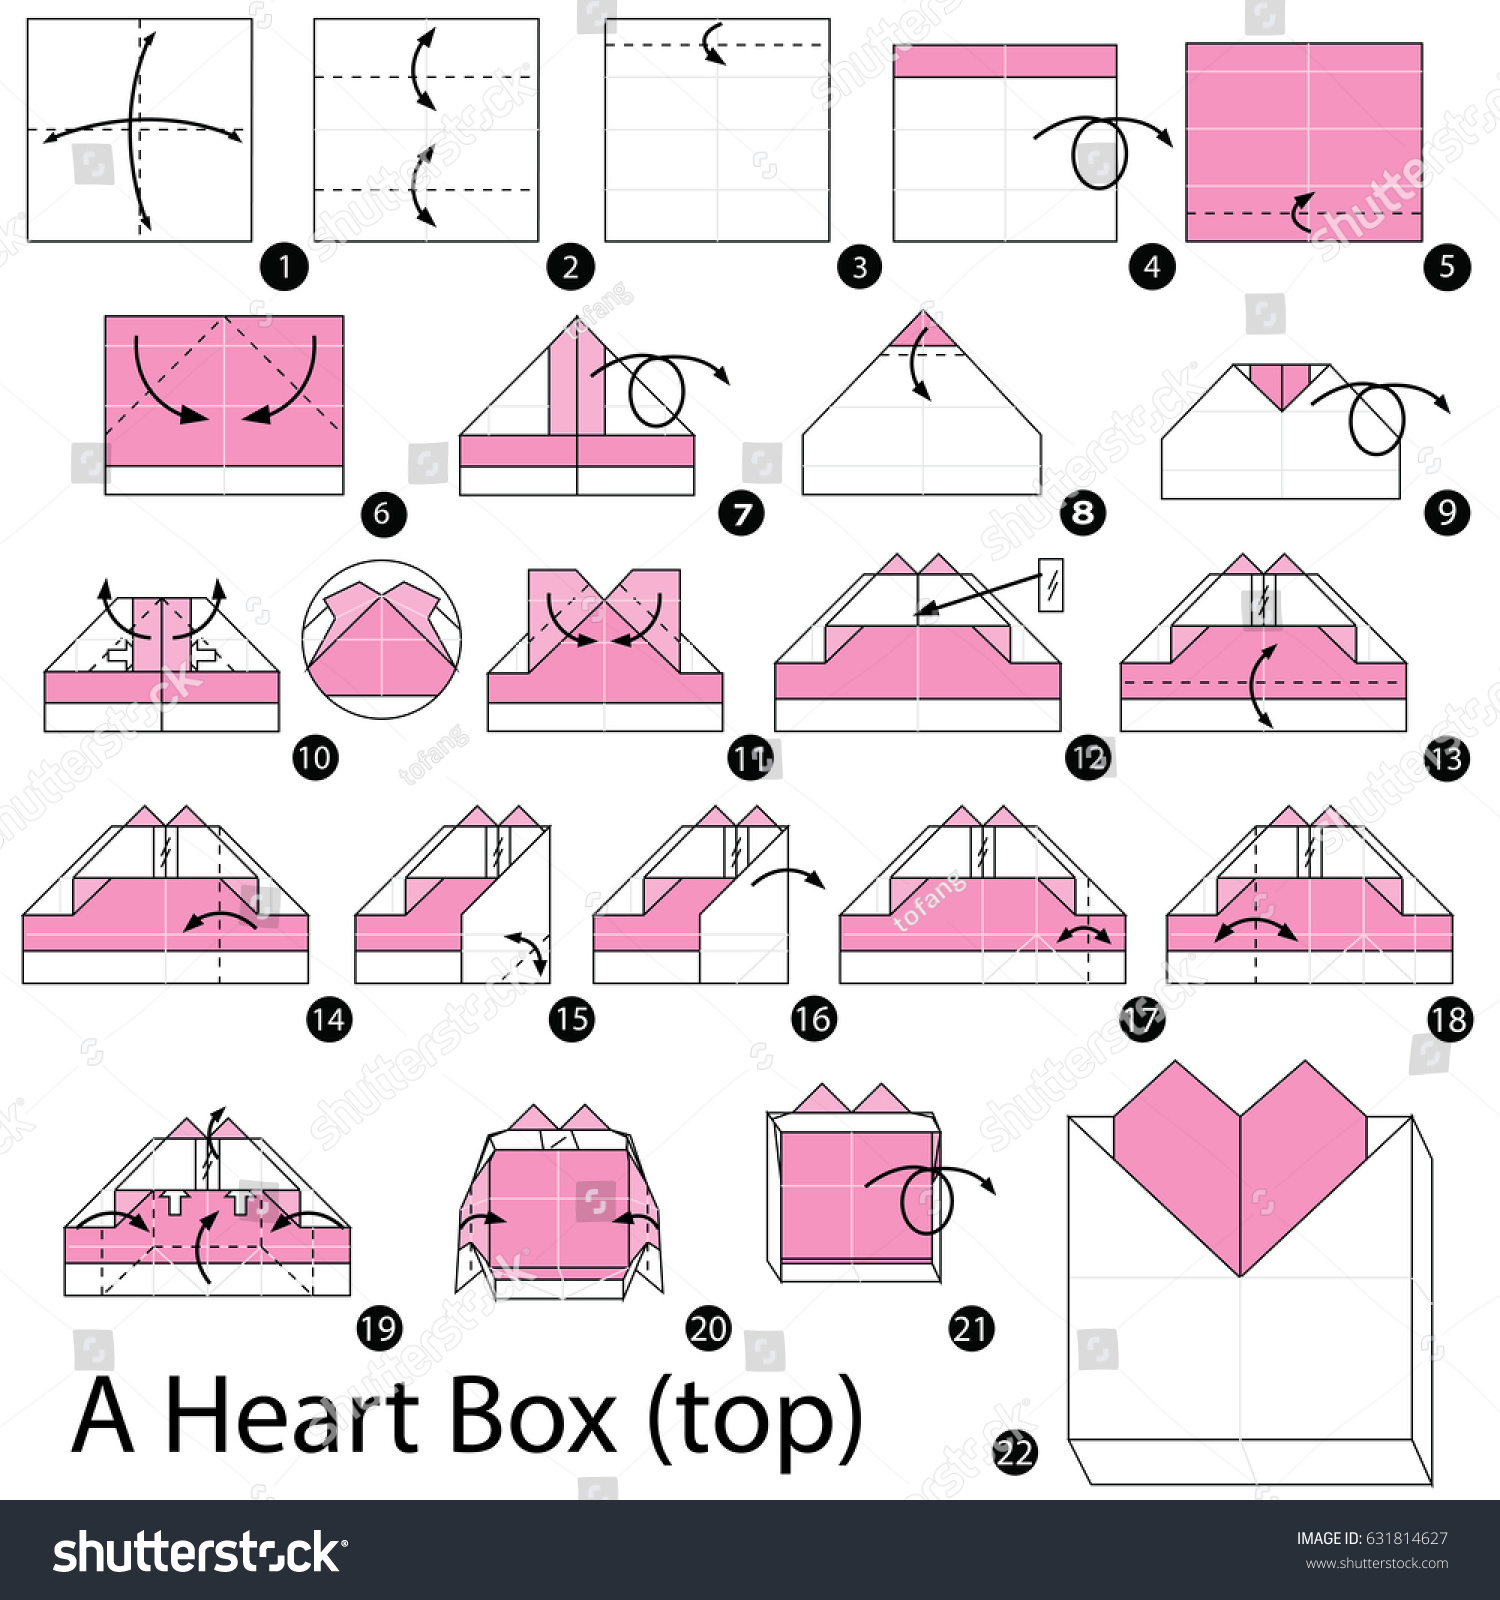 How to make an Origami Heart Box! : origami | 1600x1500